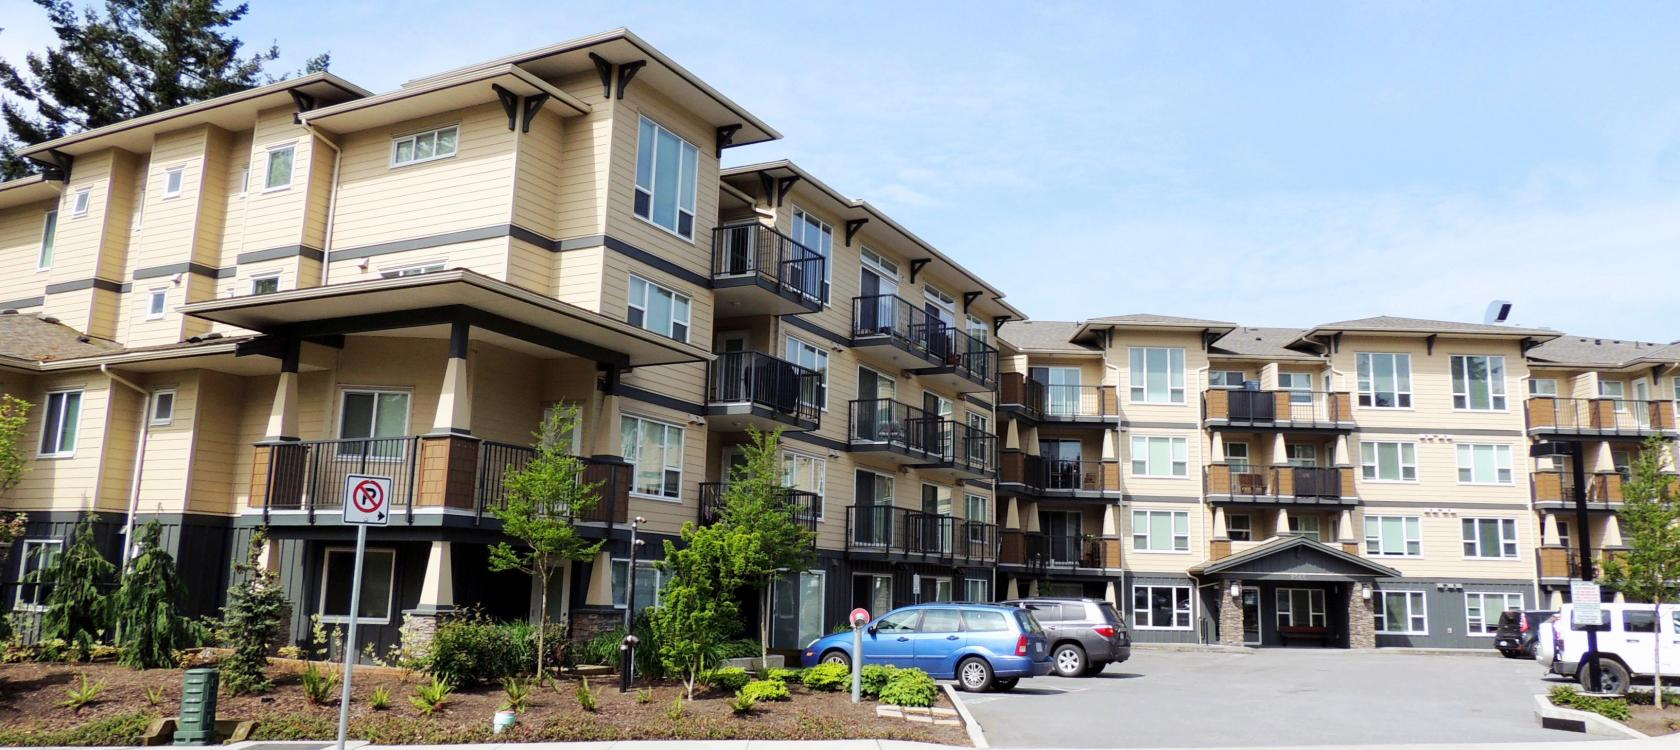 #219 - 2565 Campbell Avenue, Central Abbotsford, Abbotsford 2